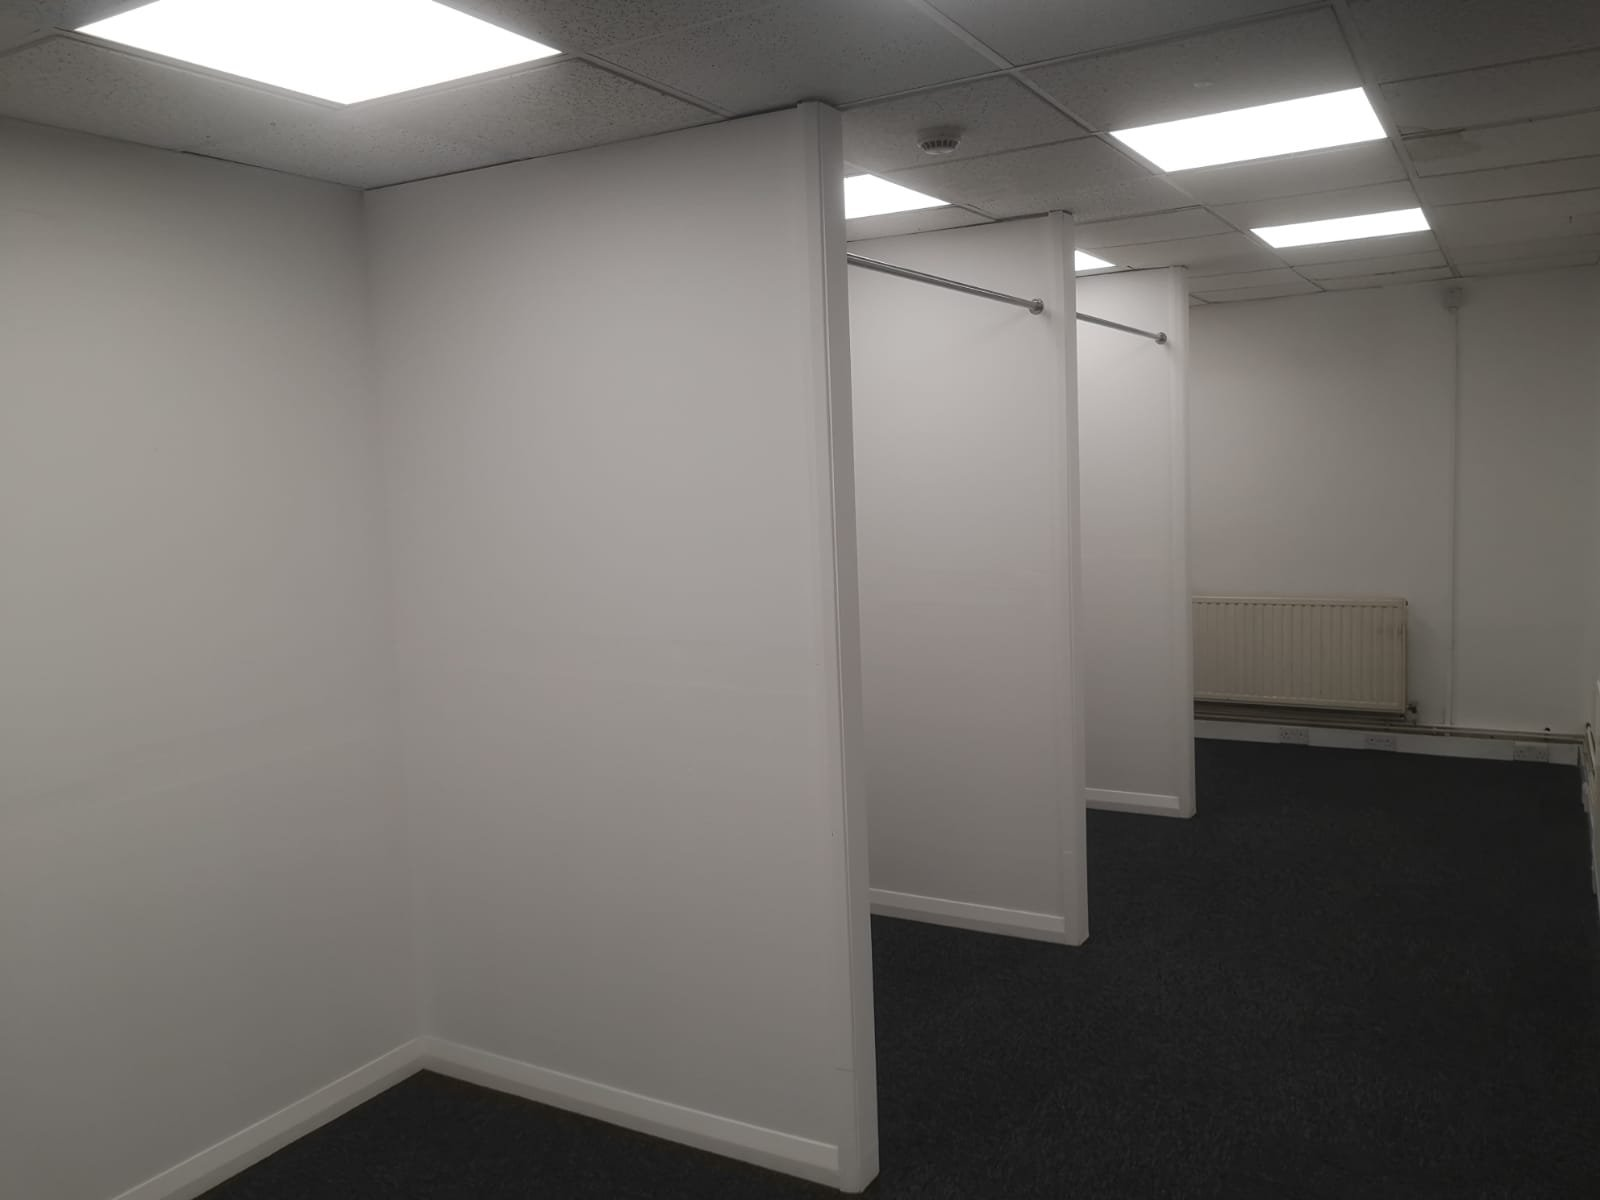 Changing rooms nearly ready